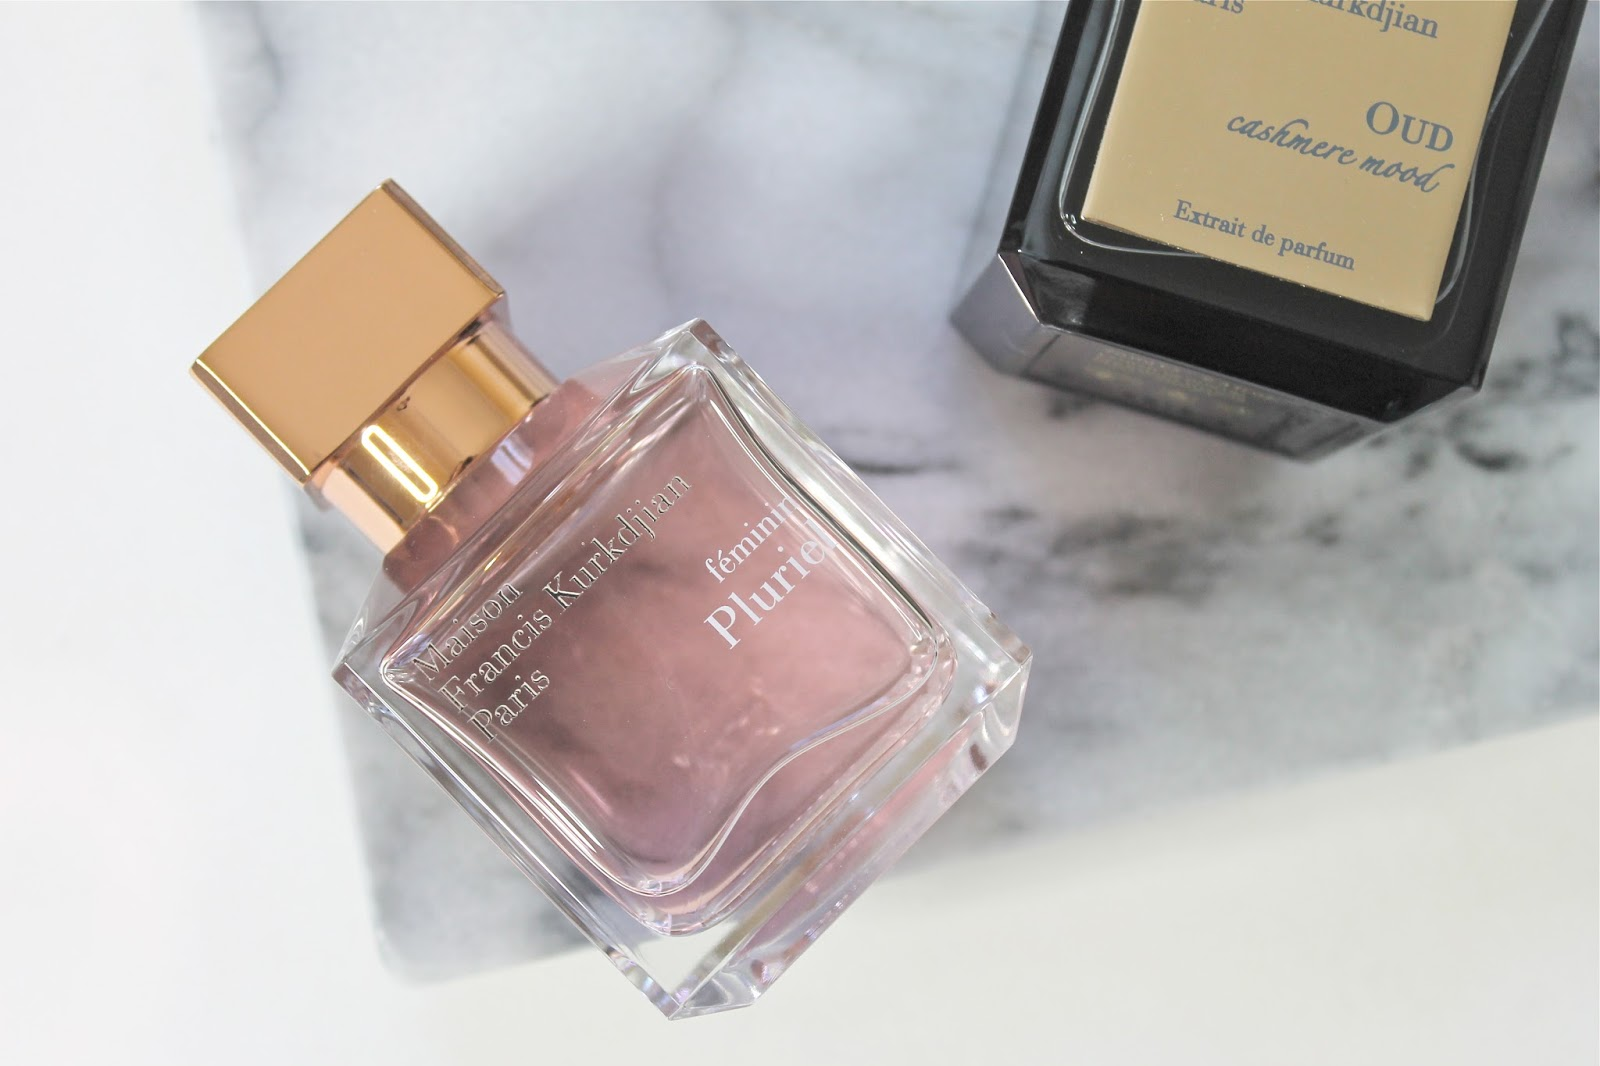 THE SCENTS FROM MAISON FRANCIS KURKDJIAN THAT WILL TRANSCEND SEASONS